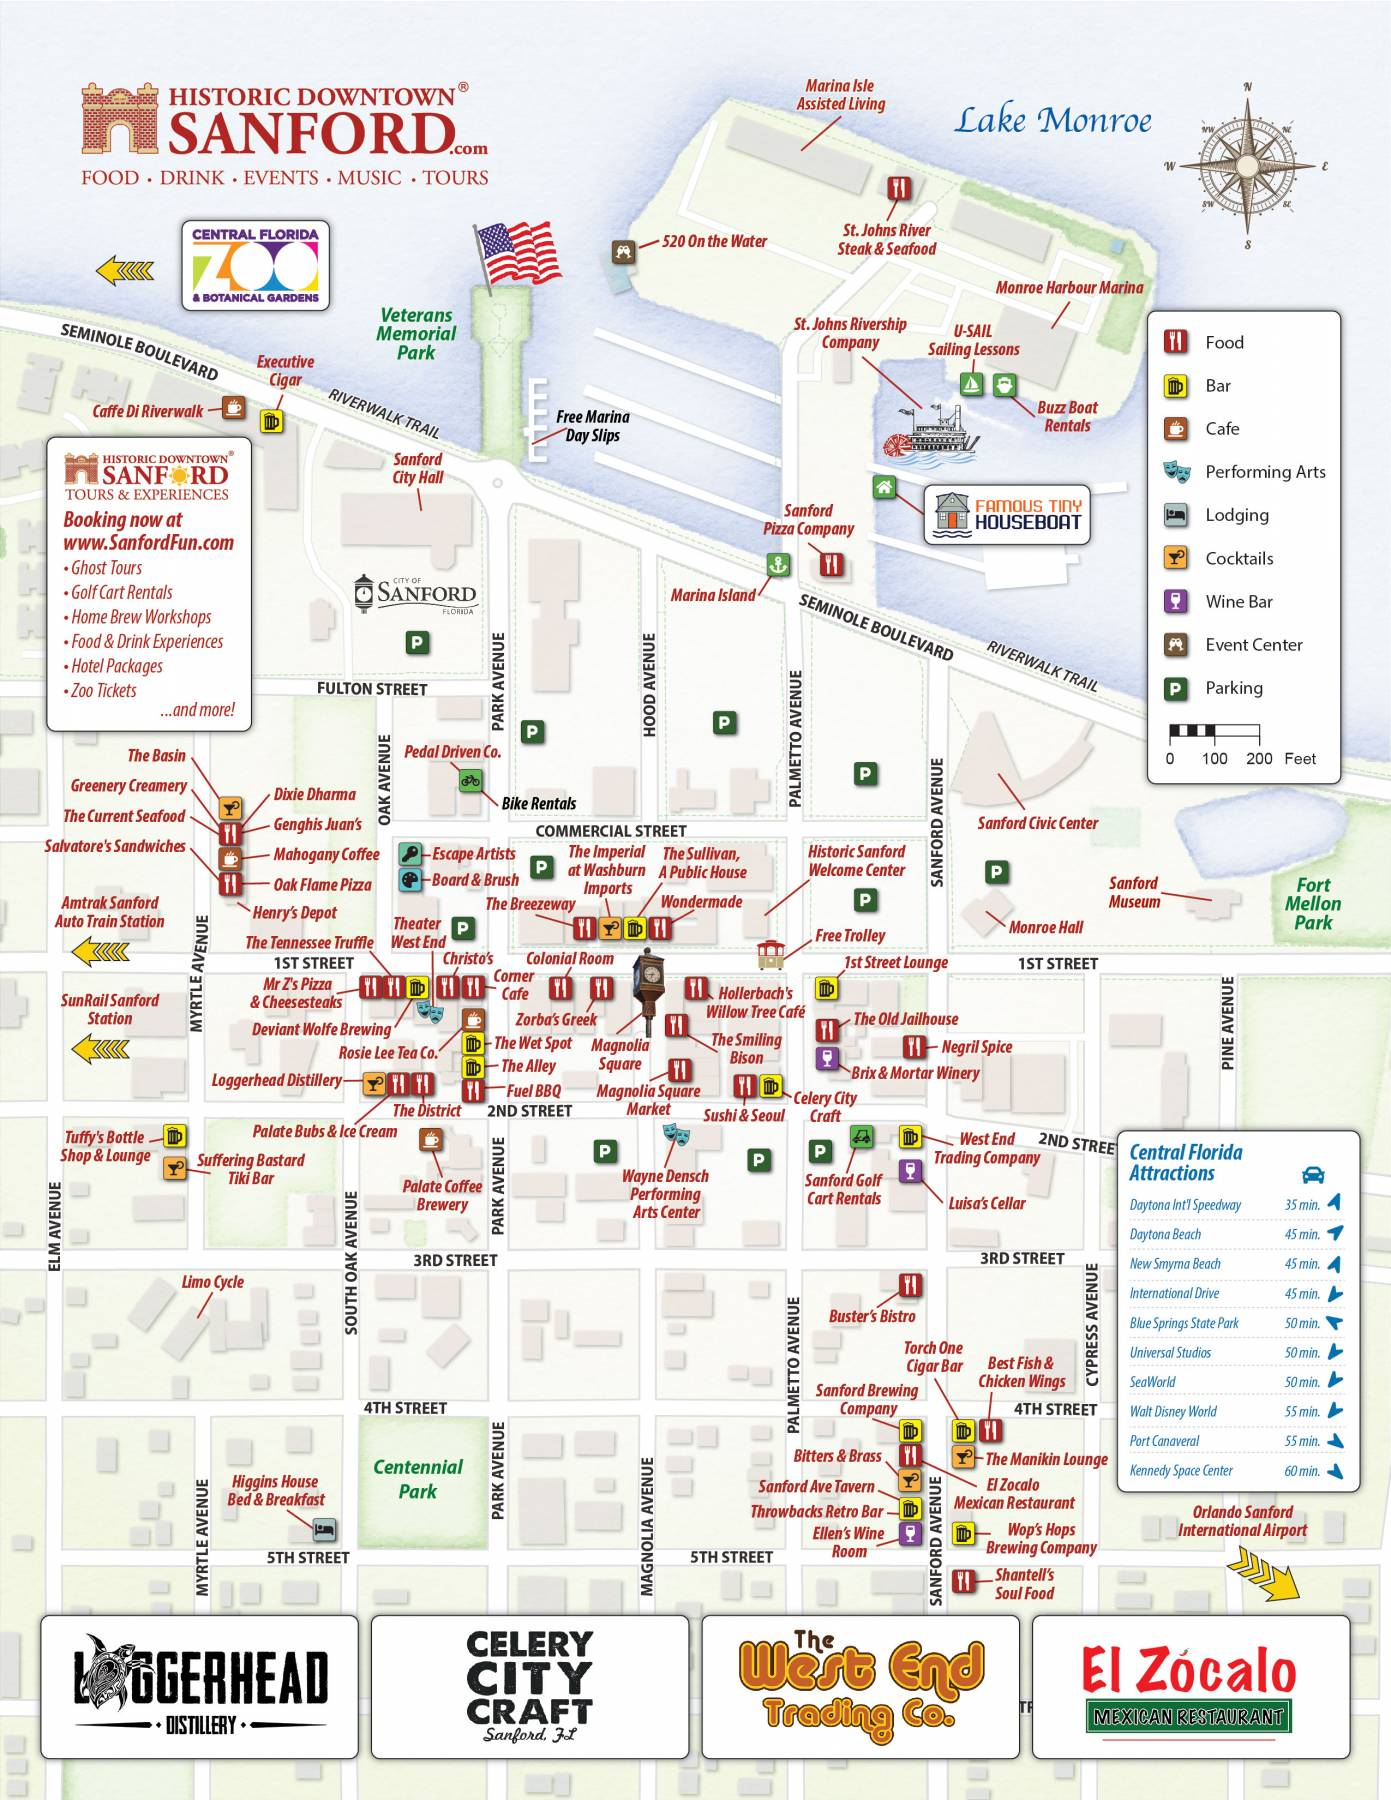 Map of Historic Downtown Sanford, Florida